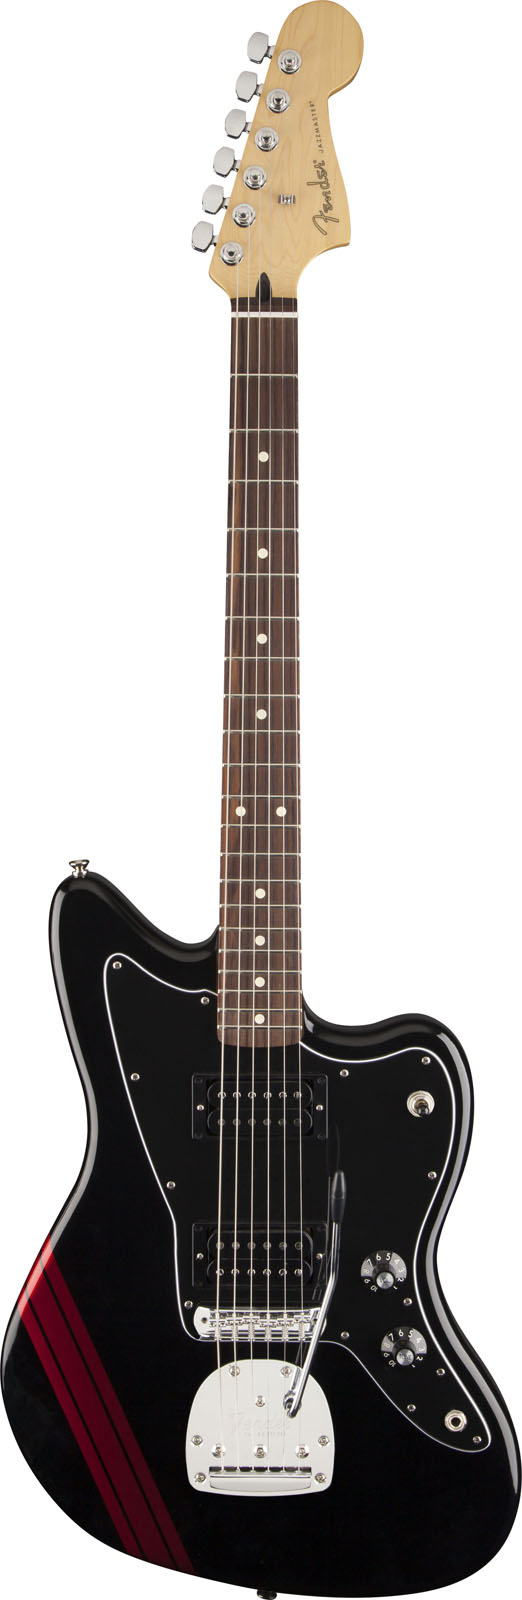 Fender Special Edition Blacktop Jazzmaster Hh Black